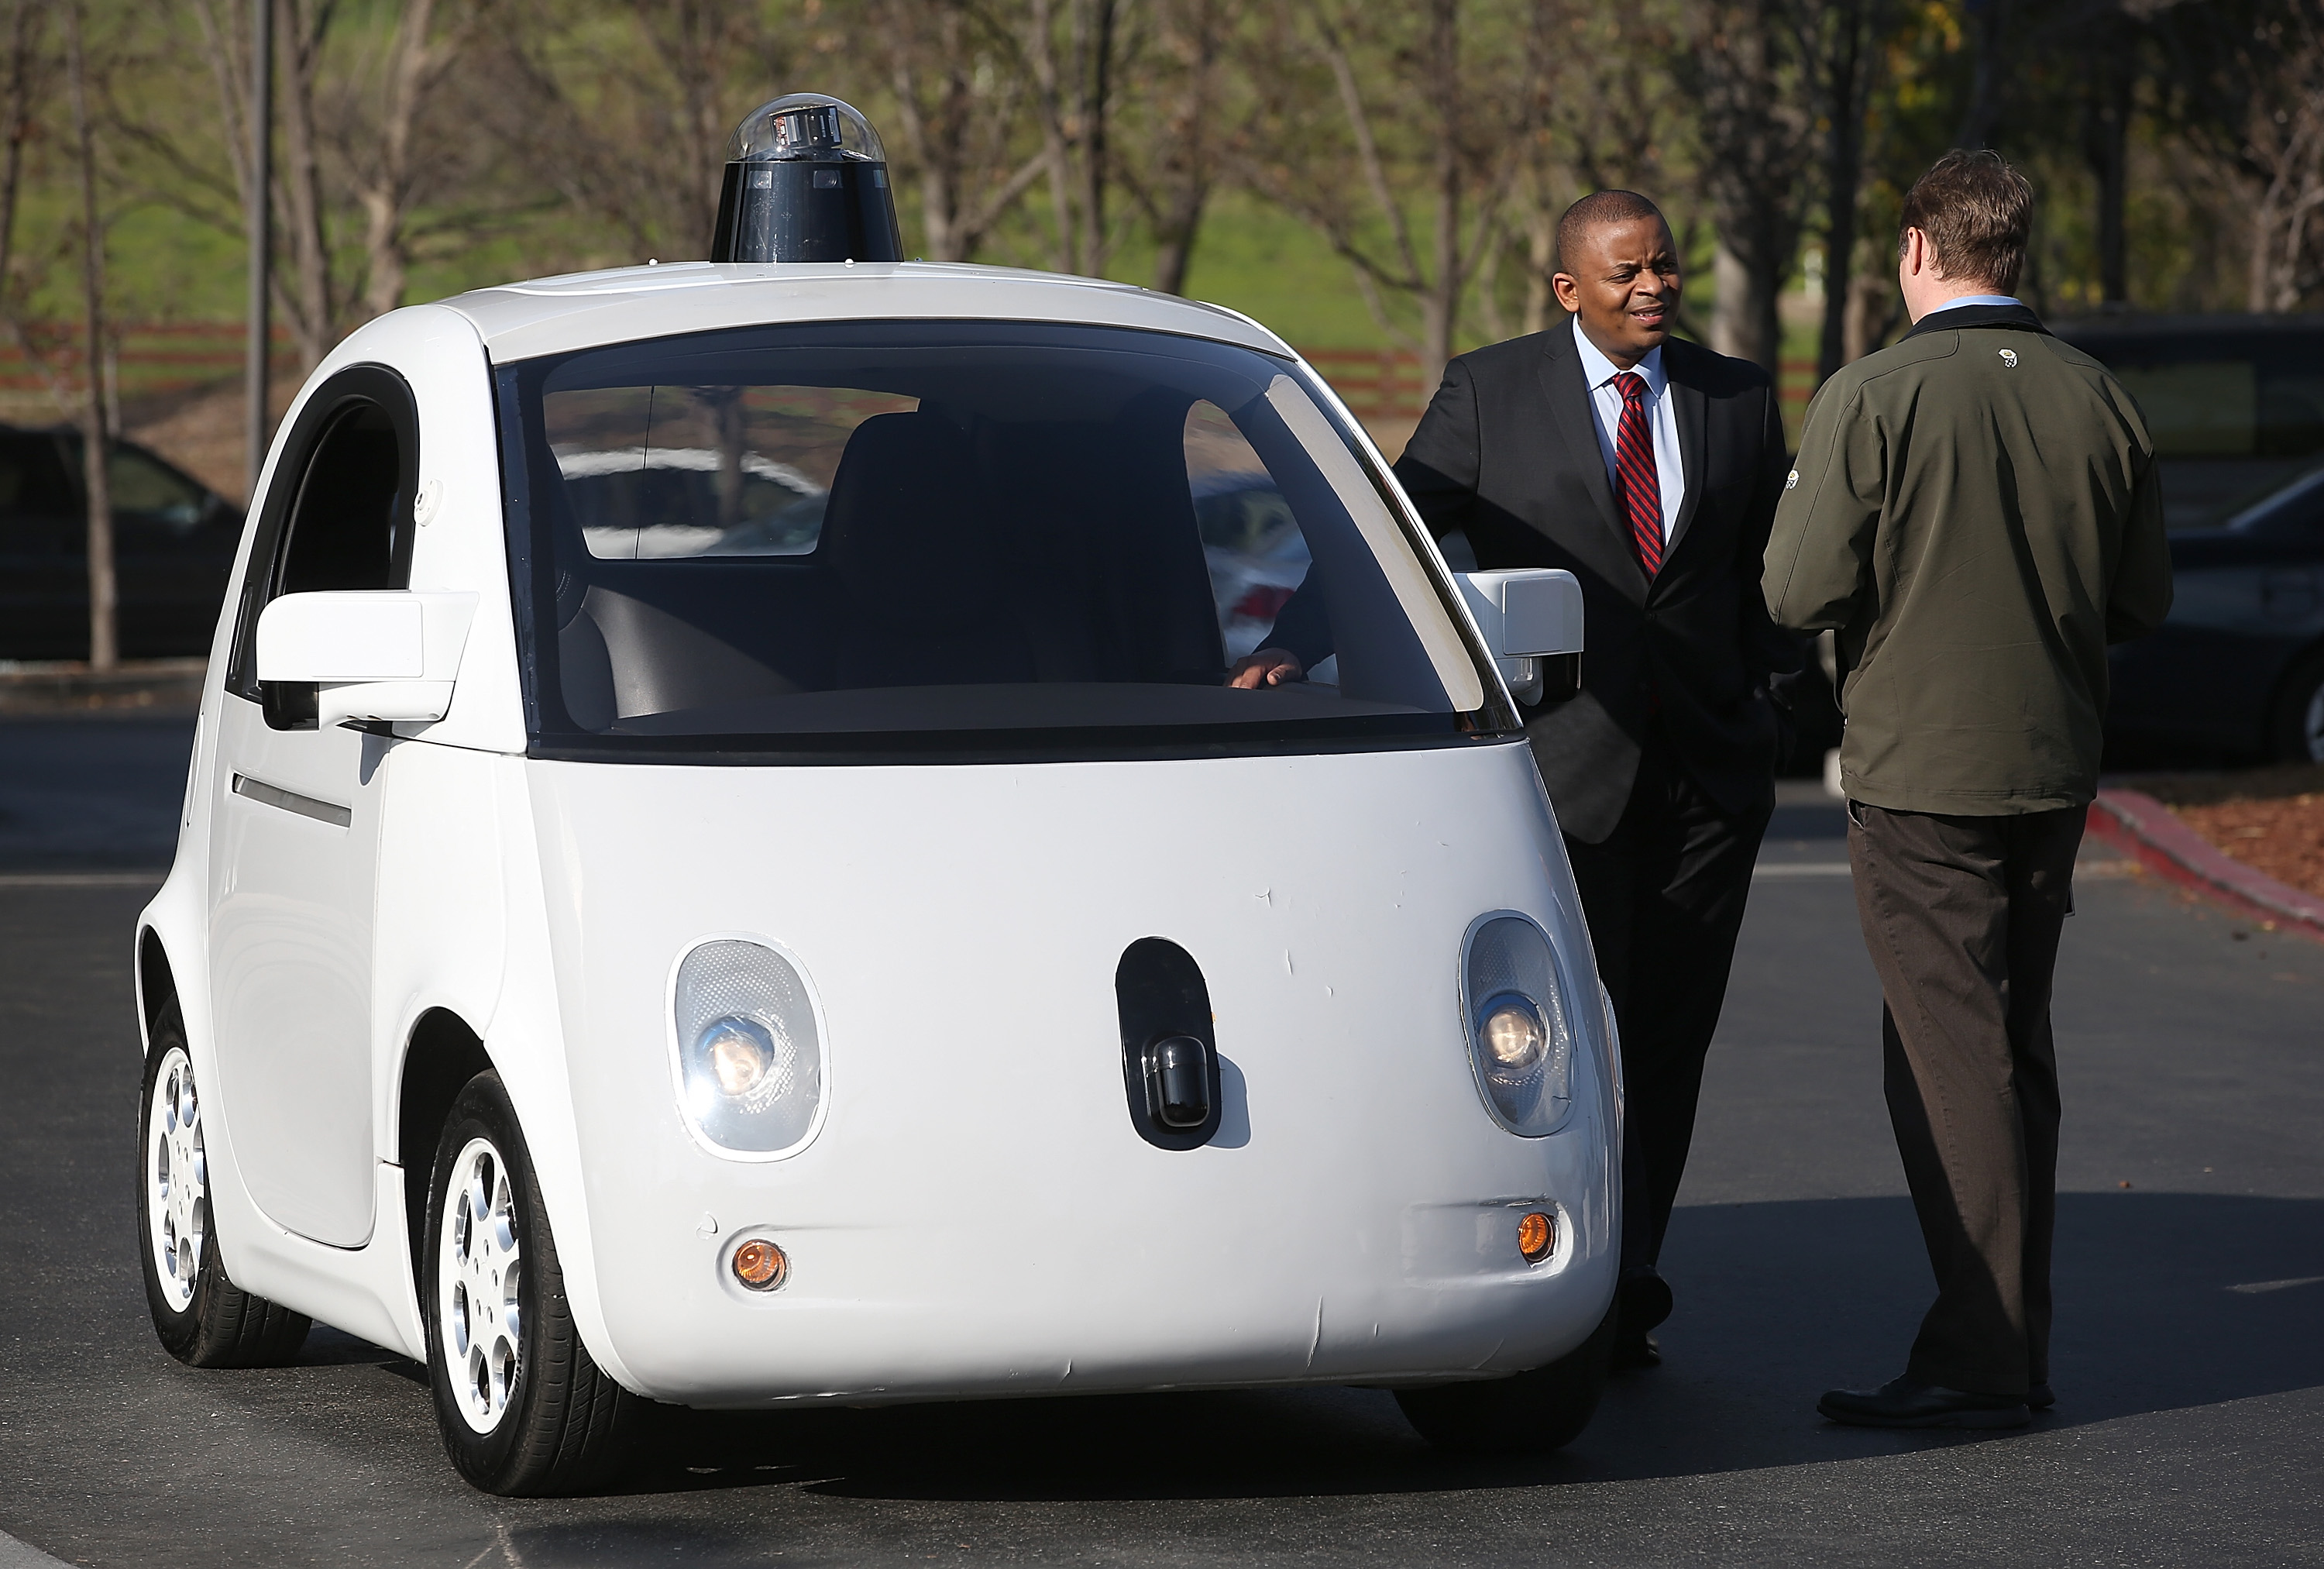 U.S. Transportation Secretary Anthony Foxx inspects a Google self-driving car at the Google headquarters on Feb. 2, 2015 in Mountain View, Calif.